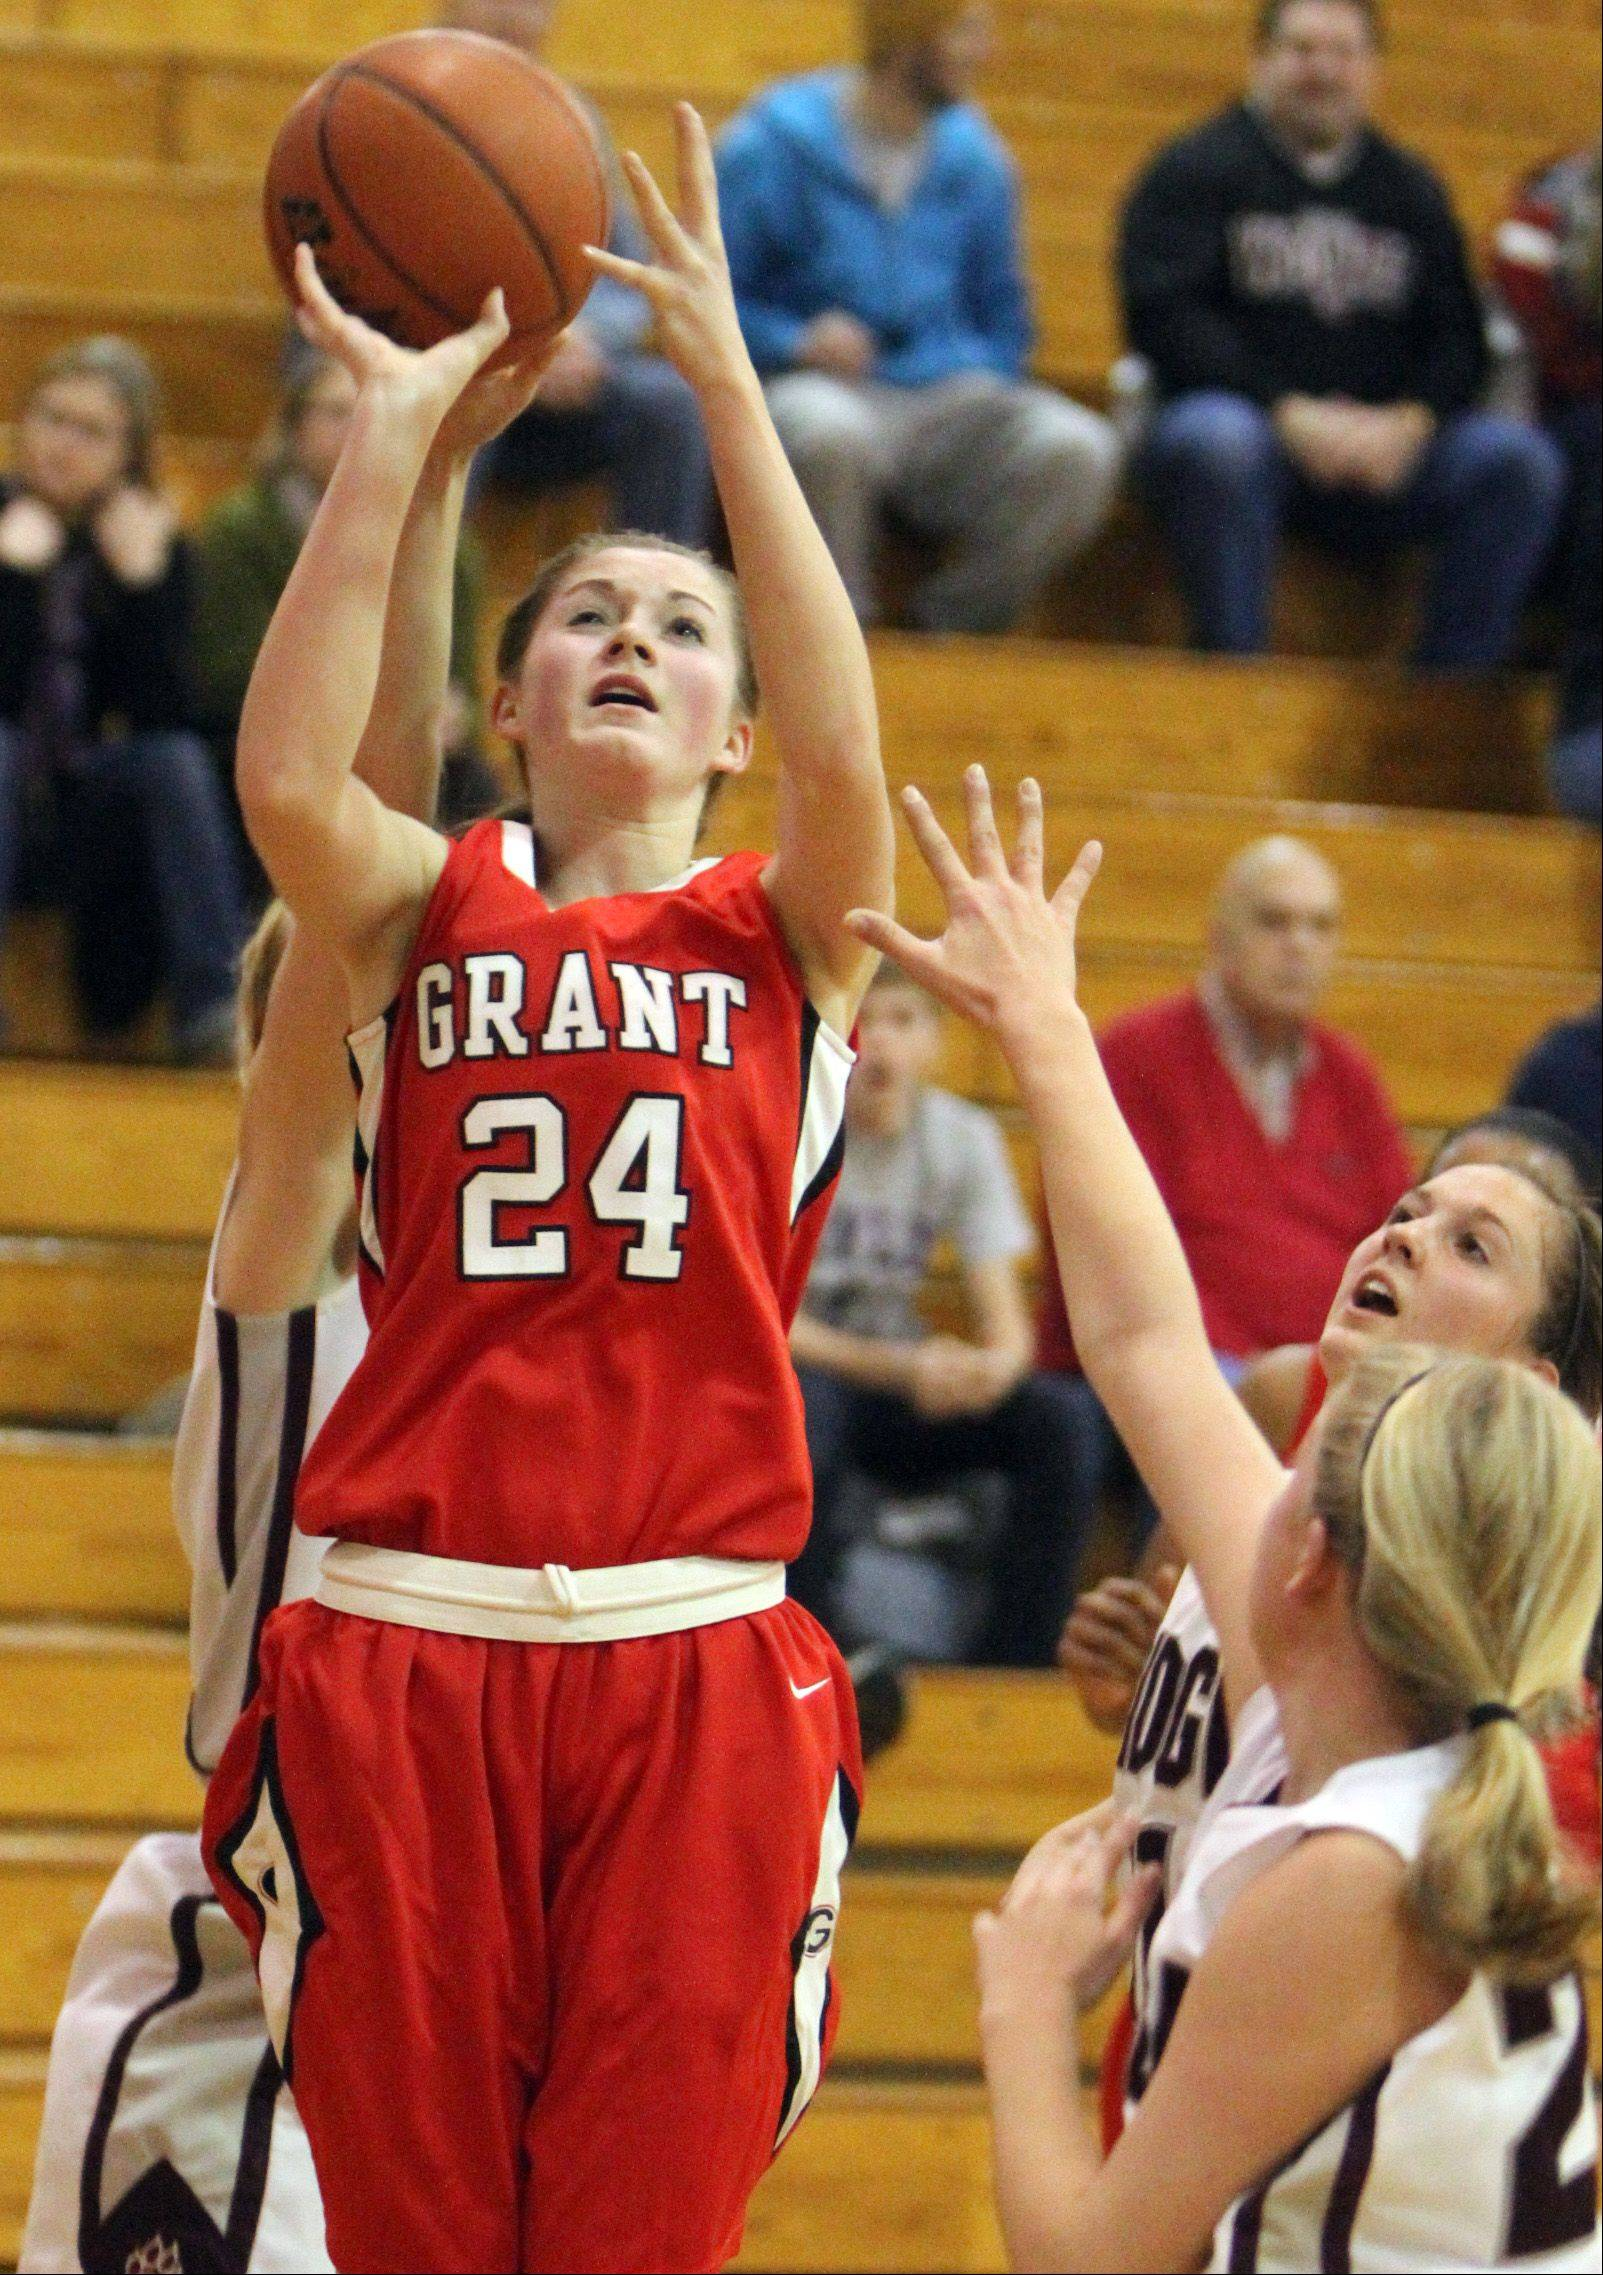 Kaylie Kanzler is playing her fourth season on varsity for Grant.